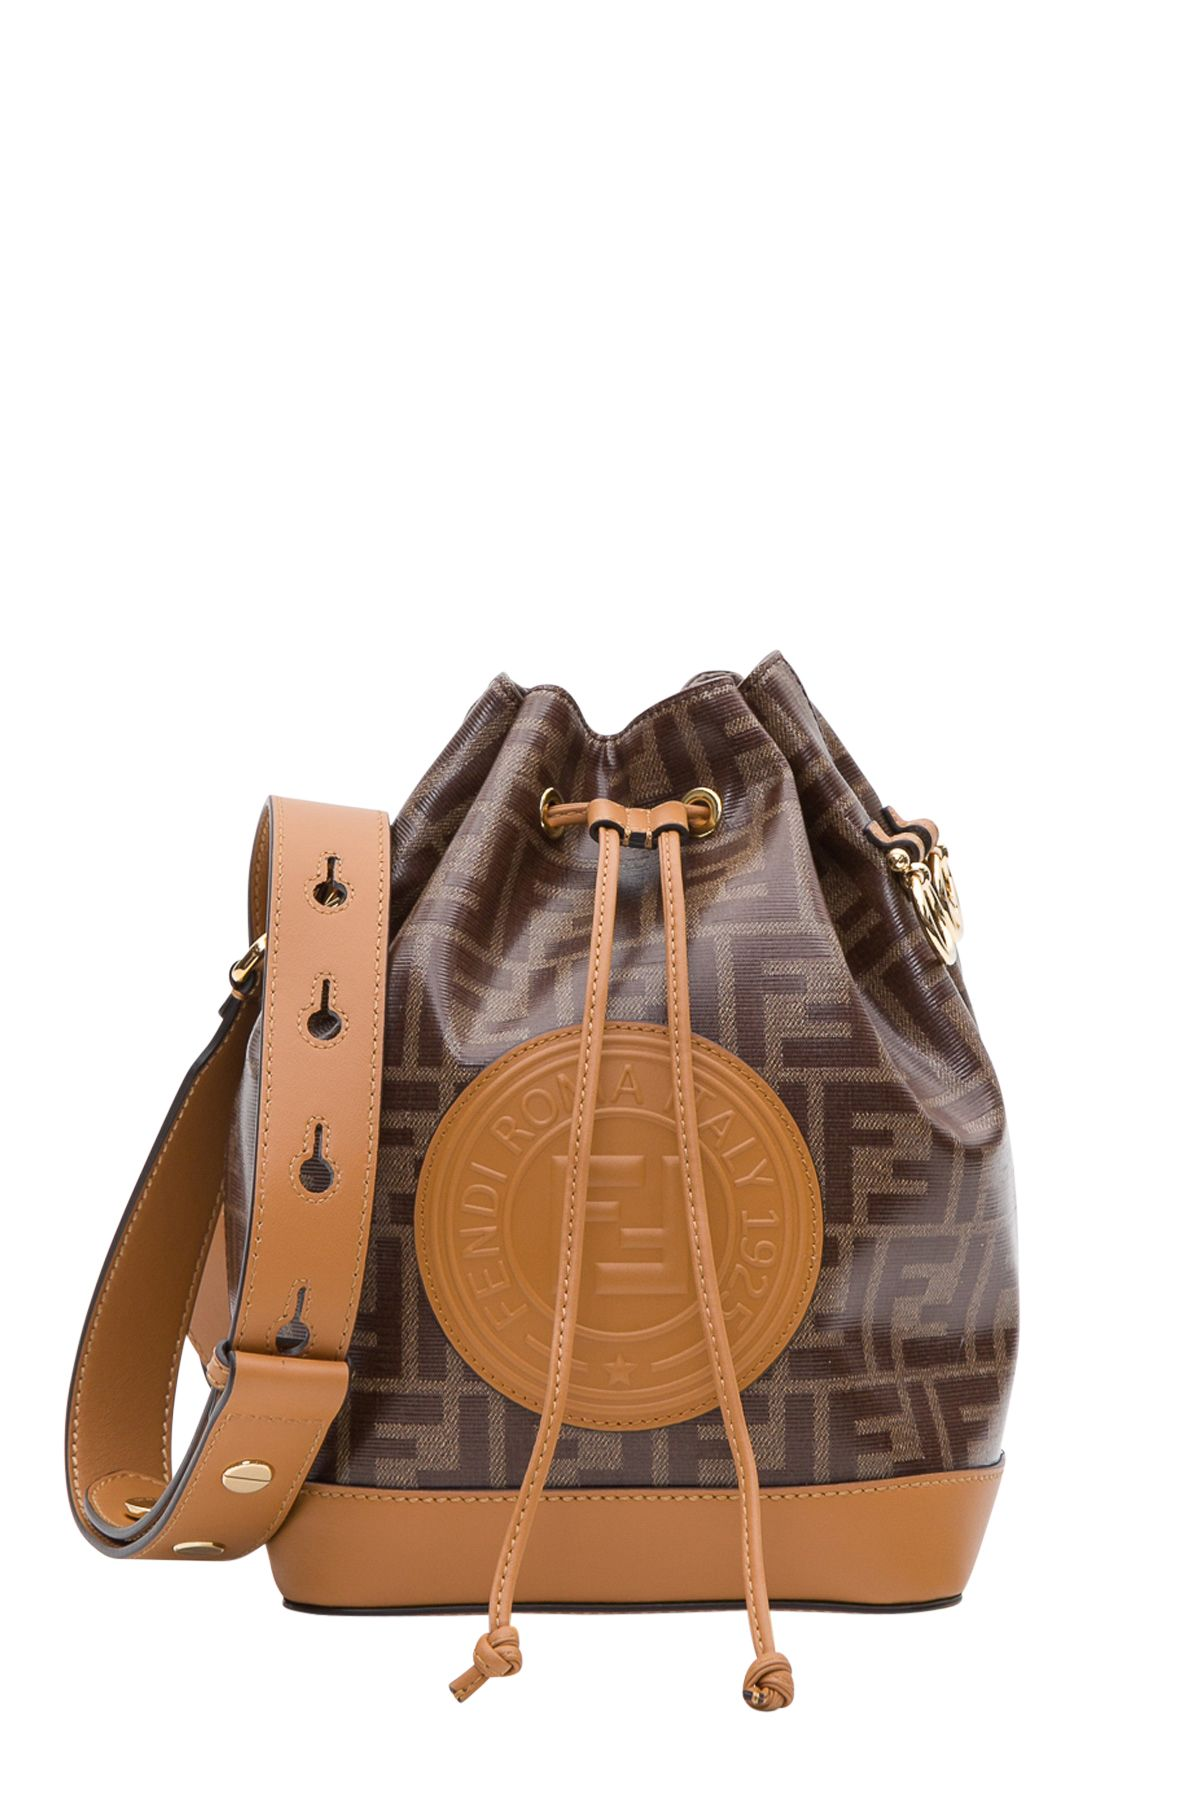 7e9032fe49e4 Fendi Fendi Mon Tresor Bucket Bag - Marrone - 10823081